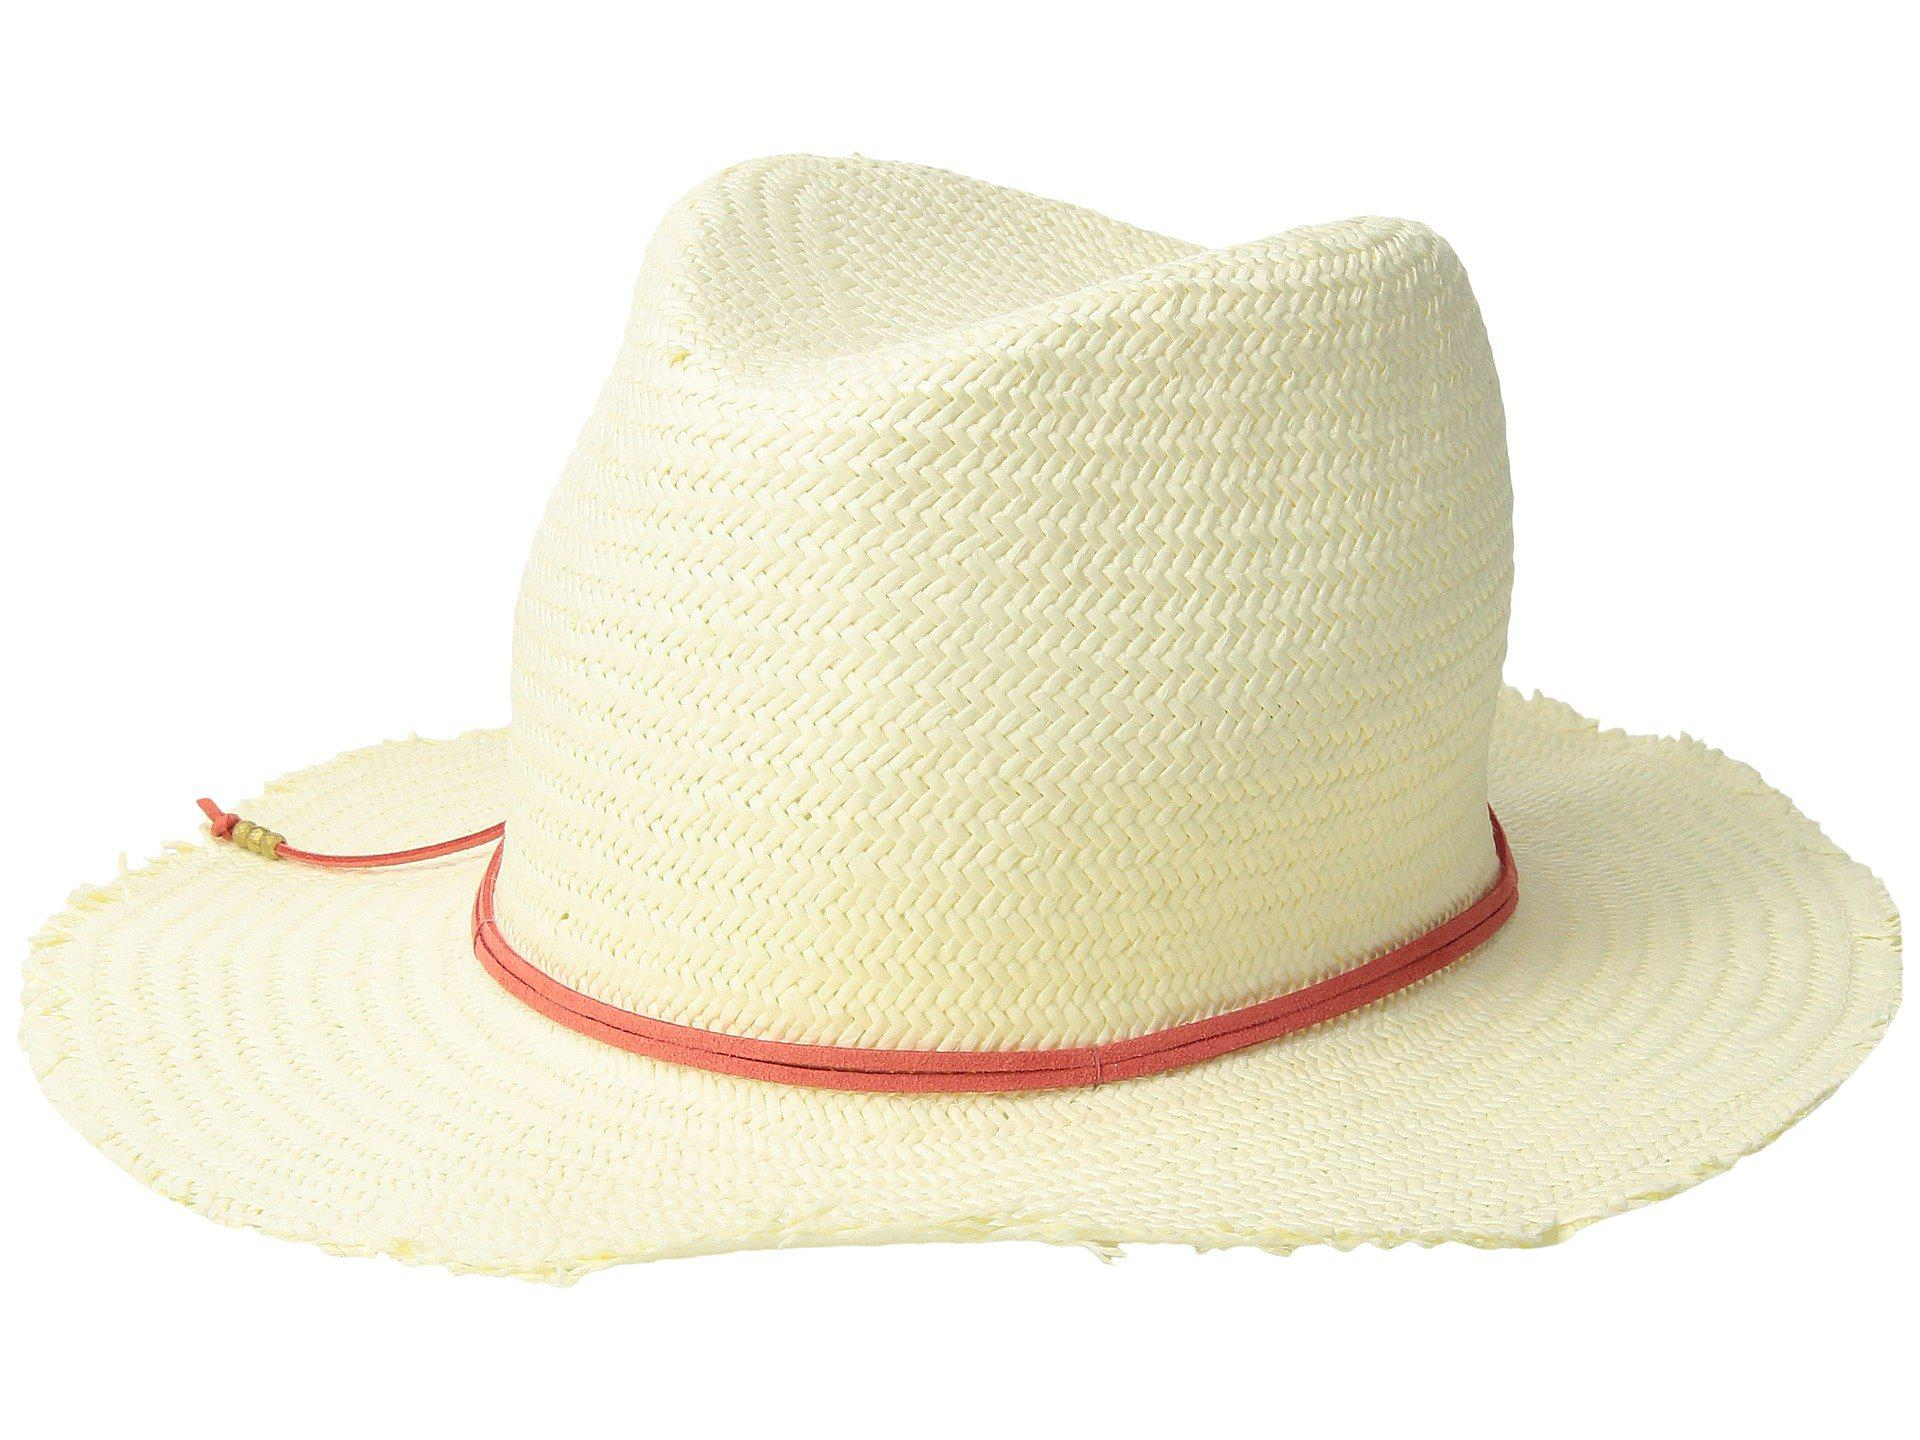 Chili Inset Rancher Hat in Tan Hat Attack XPCSWY